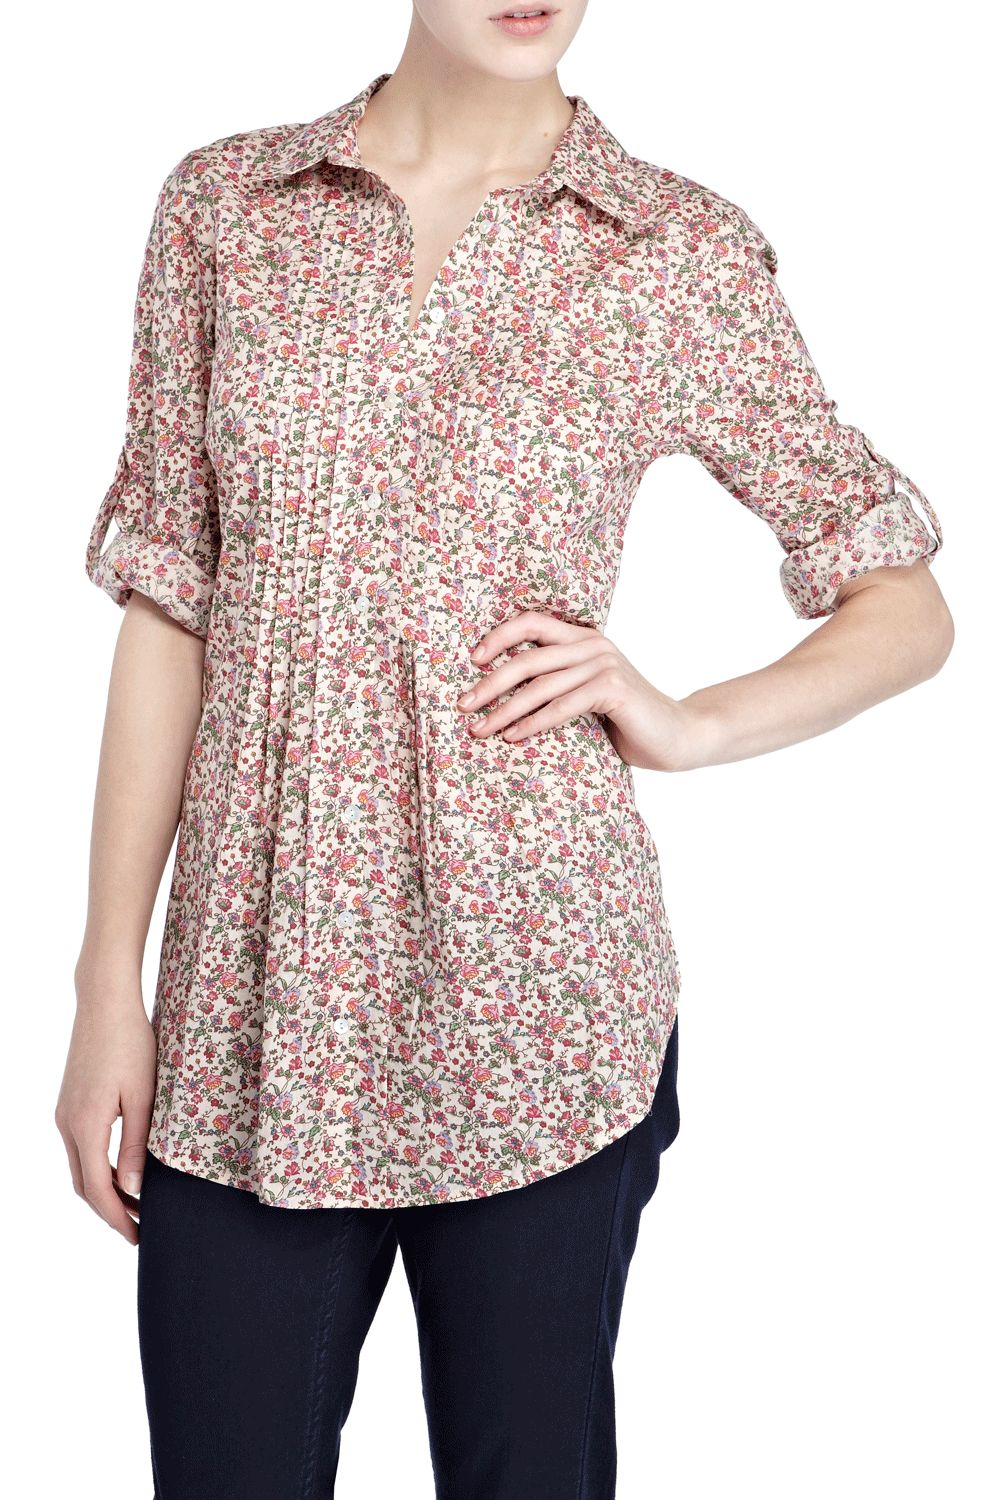 Oasis Printed blouse shirt dress Multi-Coloured product image